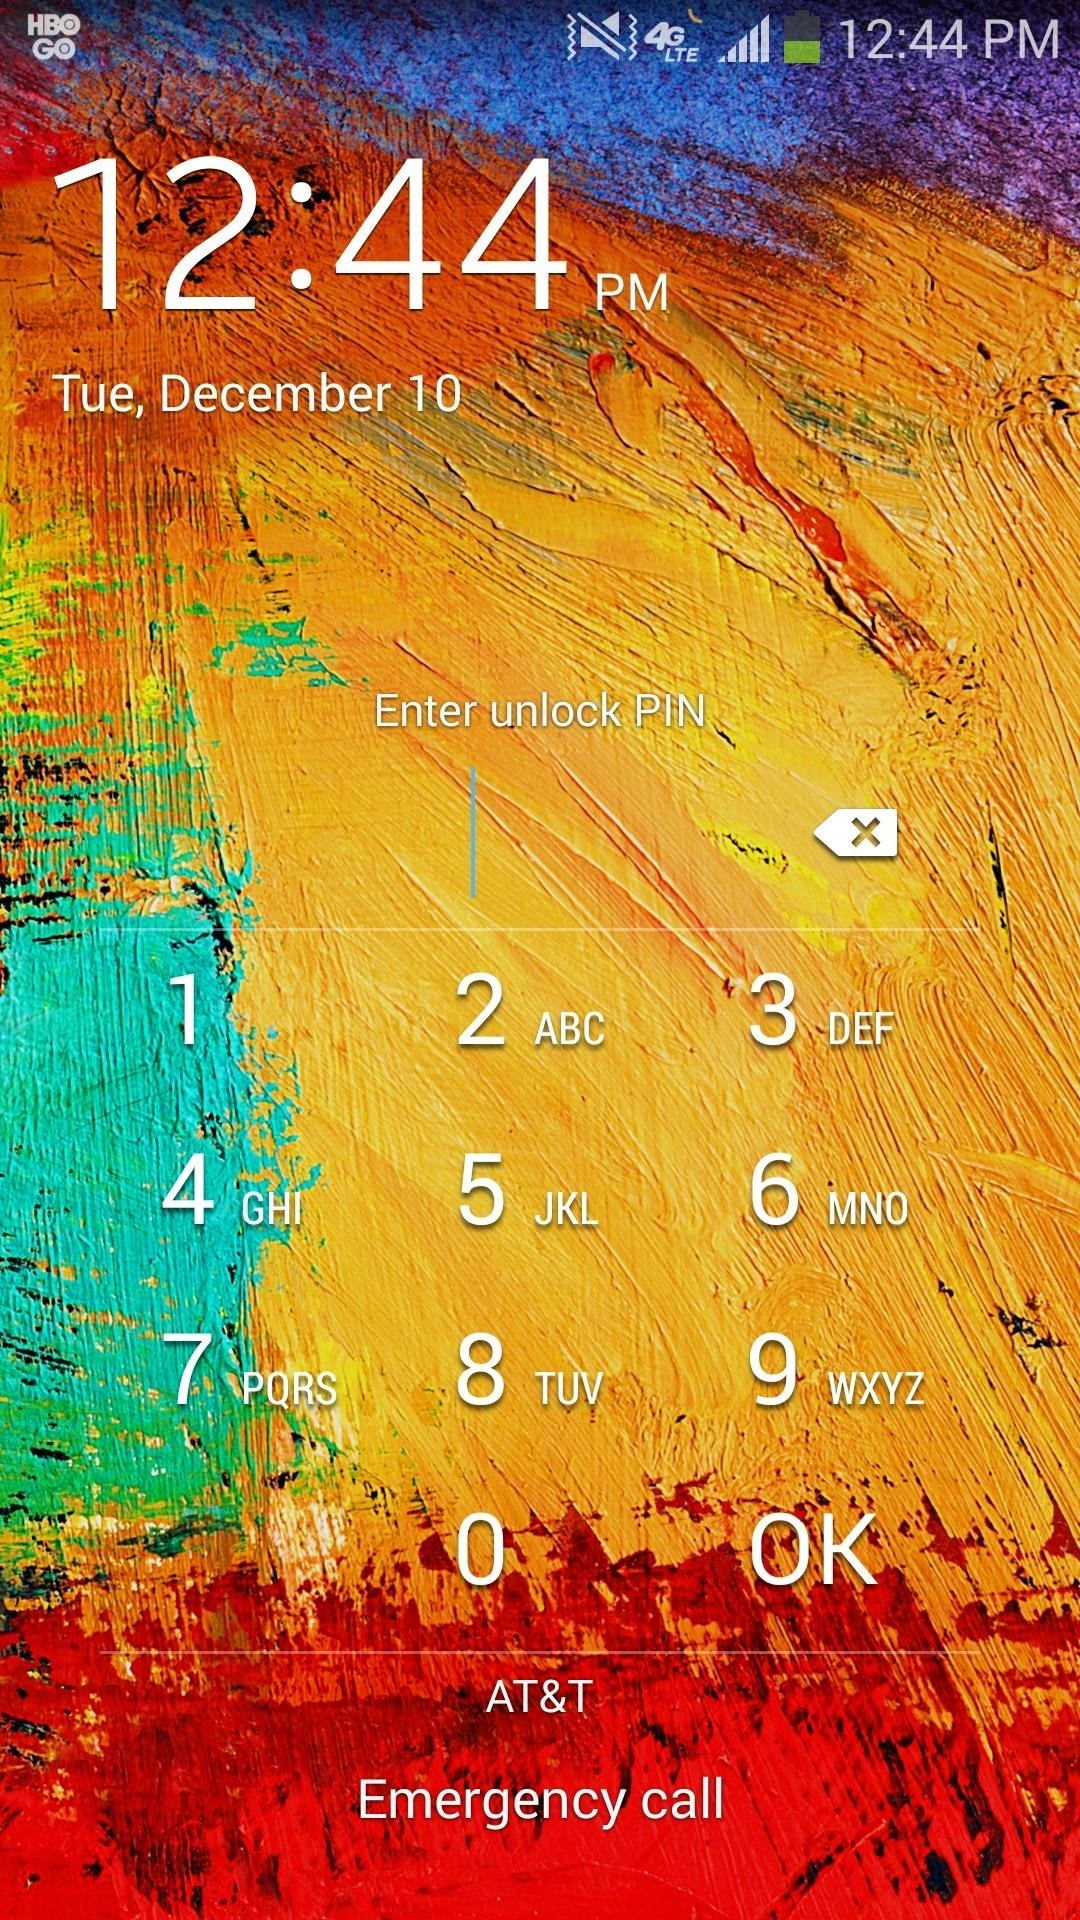 How to Skip Lock Screen Security on Your Samsung Galaxy Note 3 When Using Trusted Networks